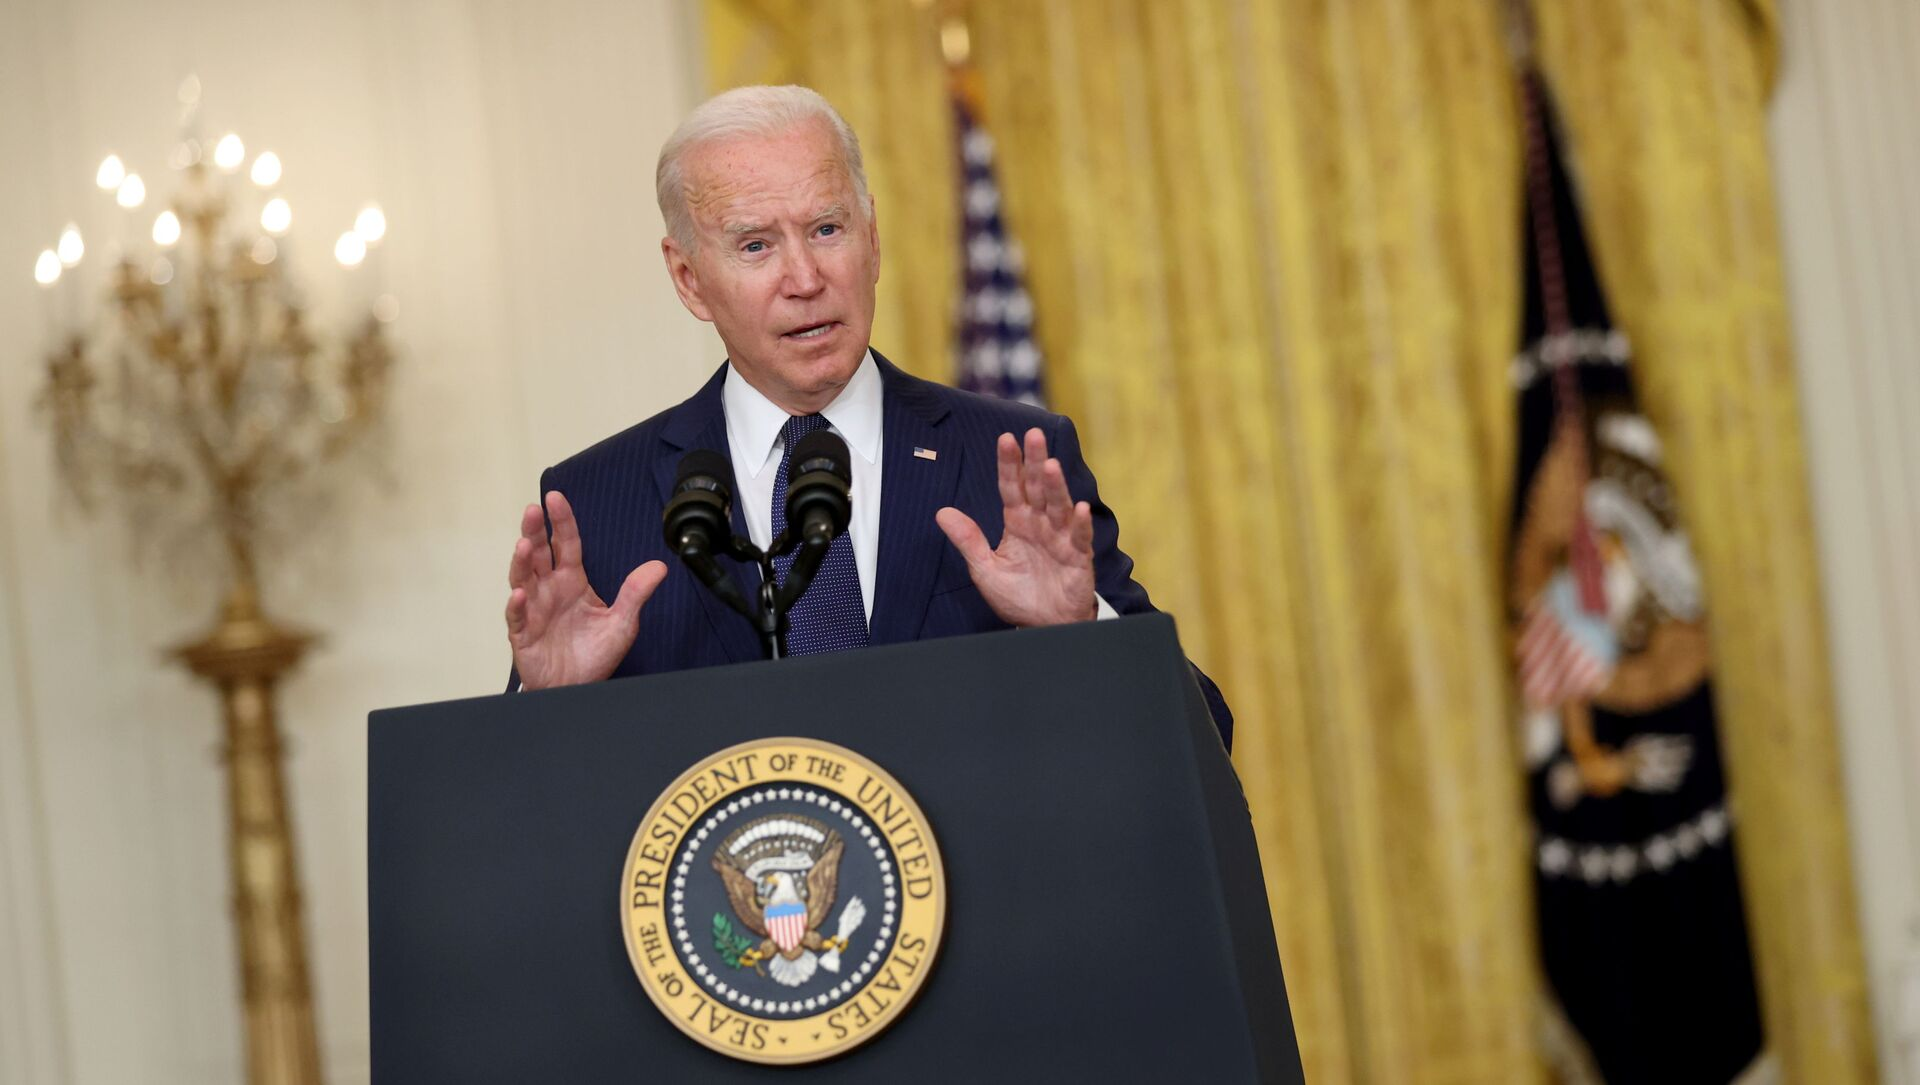 U.S. President Joe Biden delivers remarks about Afghanistan, from the East Room of the White House in Washington, U.S. August 26, 2021 - Sputnik International, 1920, 26.08.2021